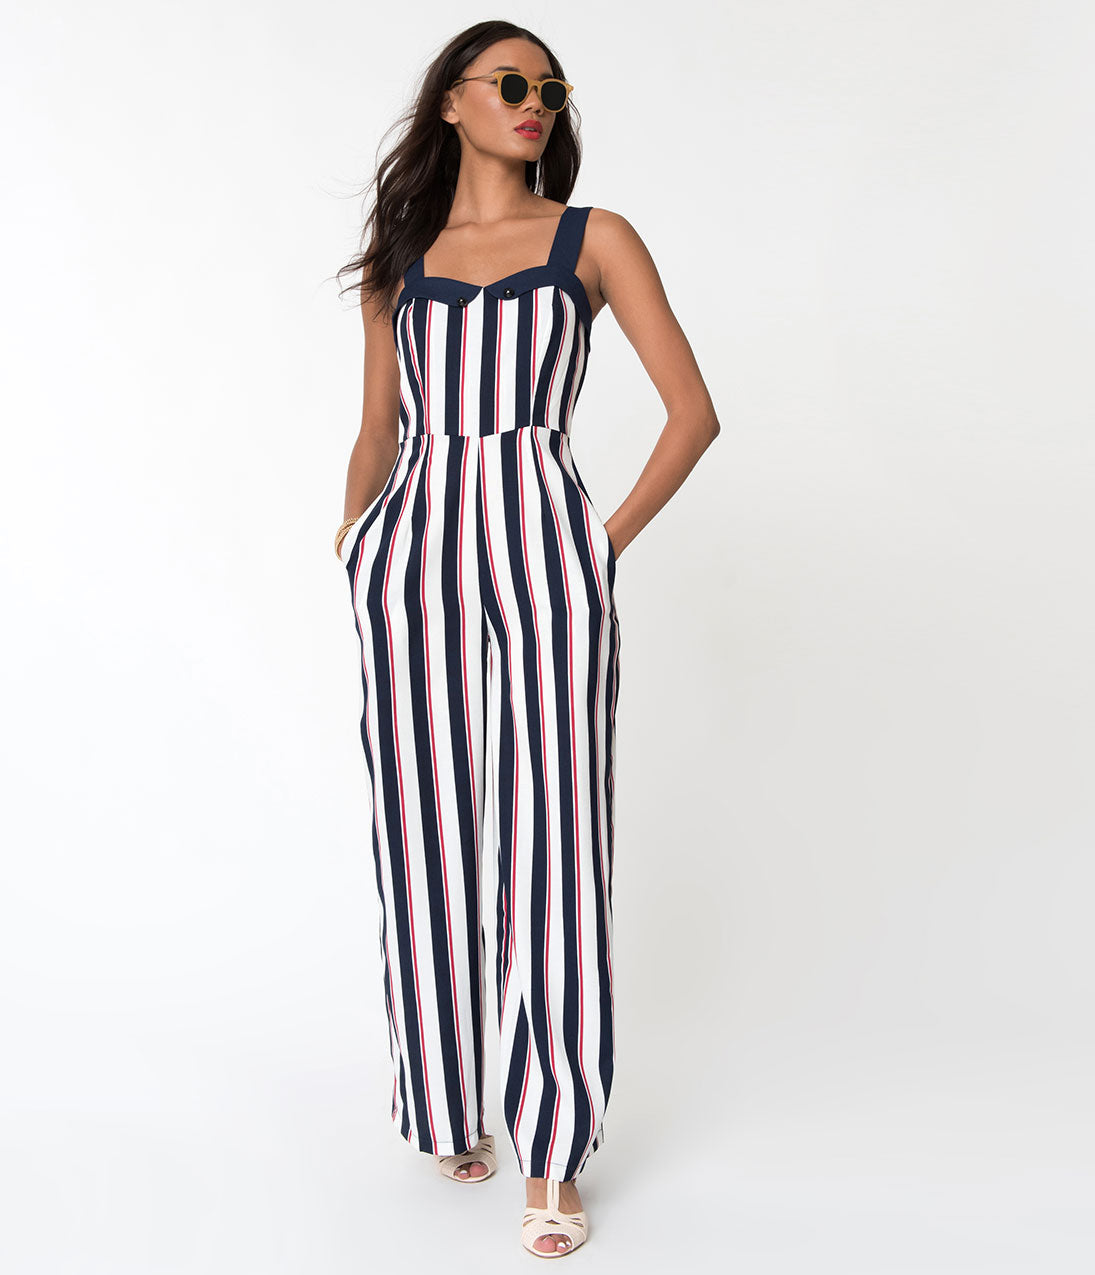 1950s Pants & Jeans- High Waist, Wide Leg, Capri, Pedal Pushers Banned Red White  Blue Striped Set Sail Sleeveless Crepe Jumpsuit $78.00 AT vintagedancer.com